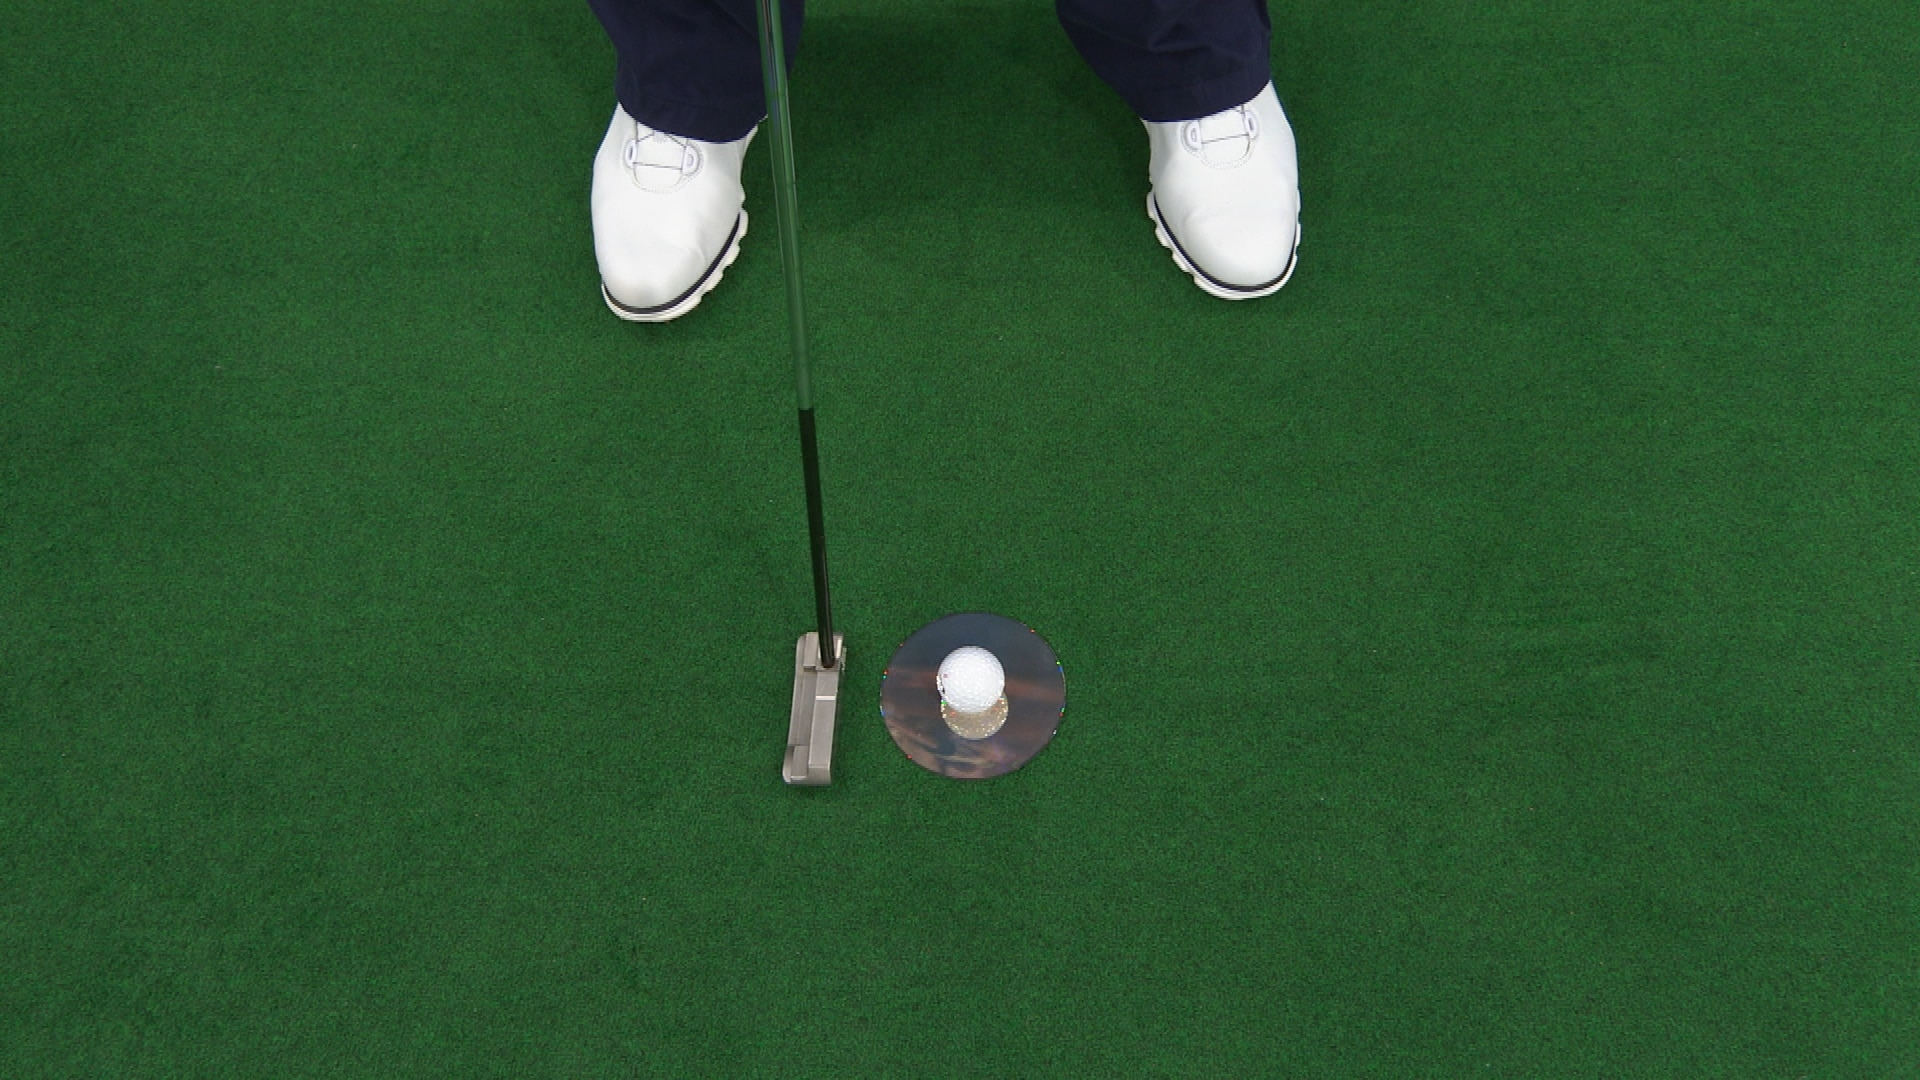 putting drill using cd disc to make more putts golf channel